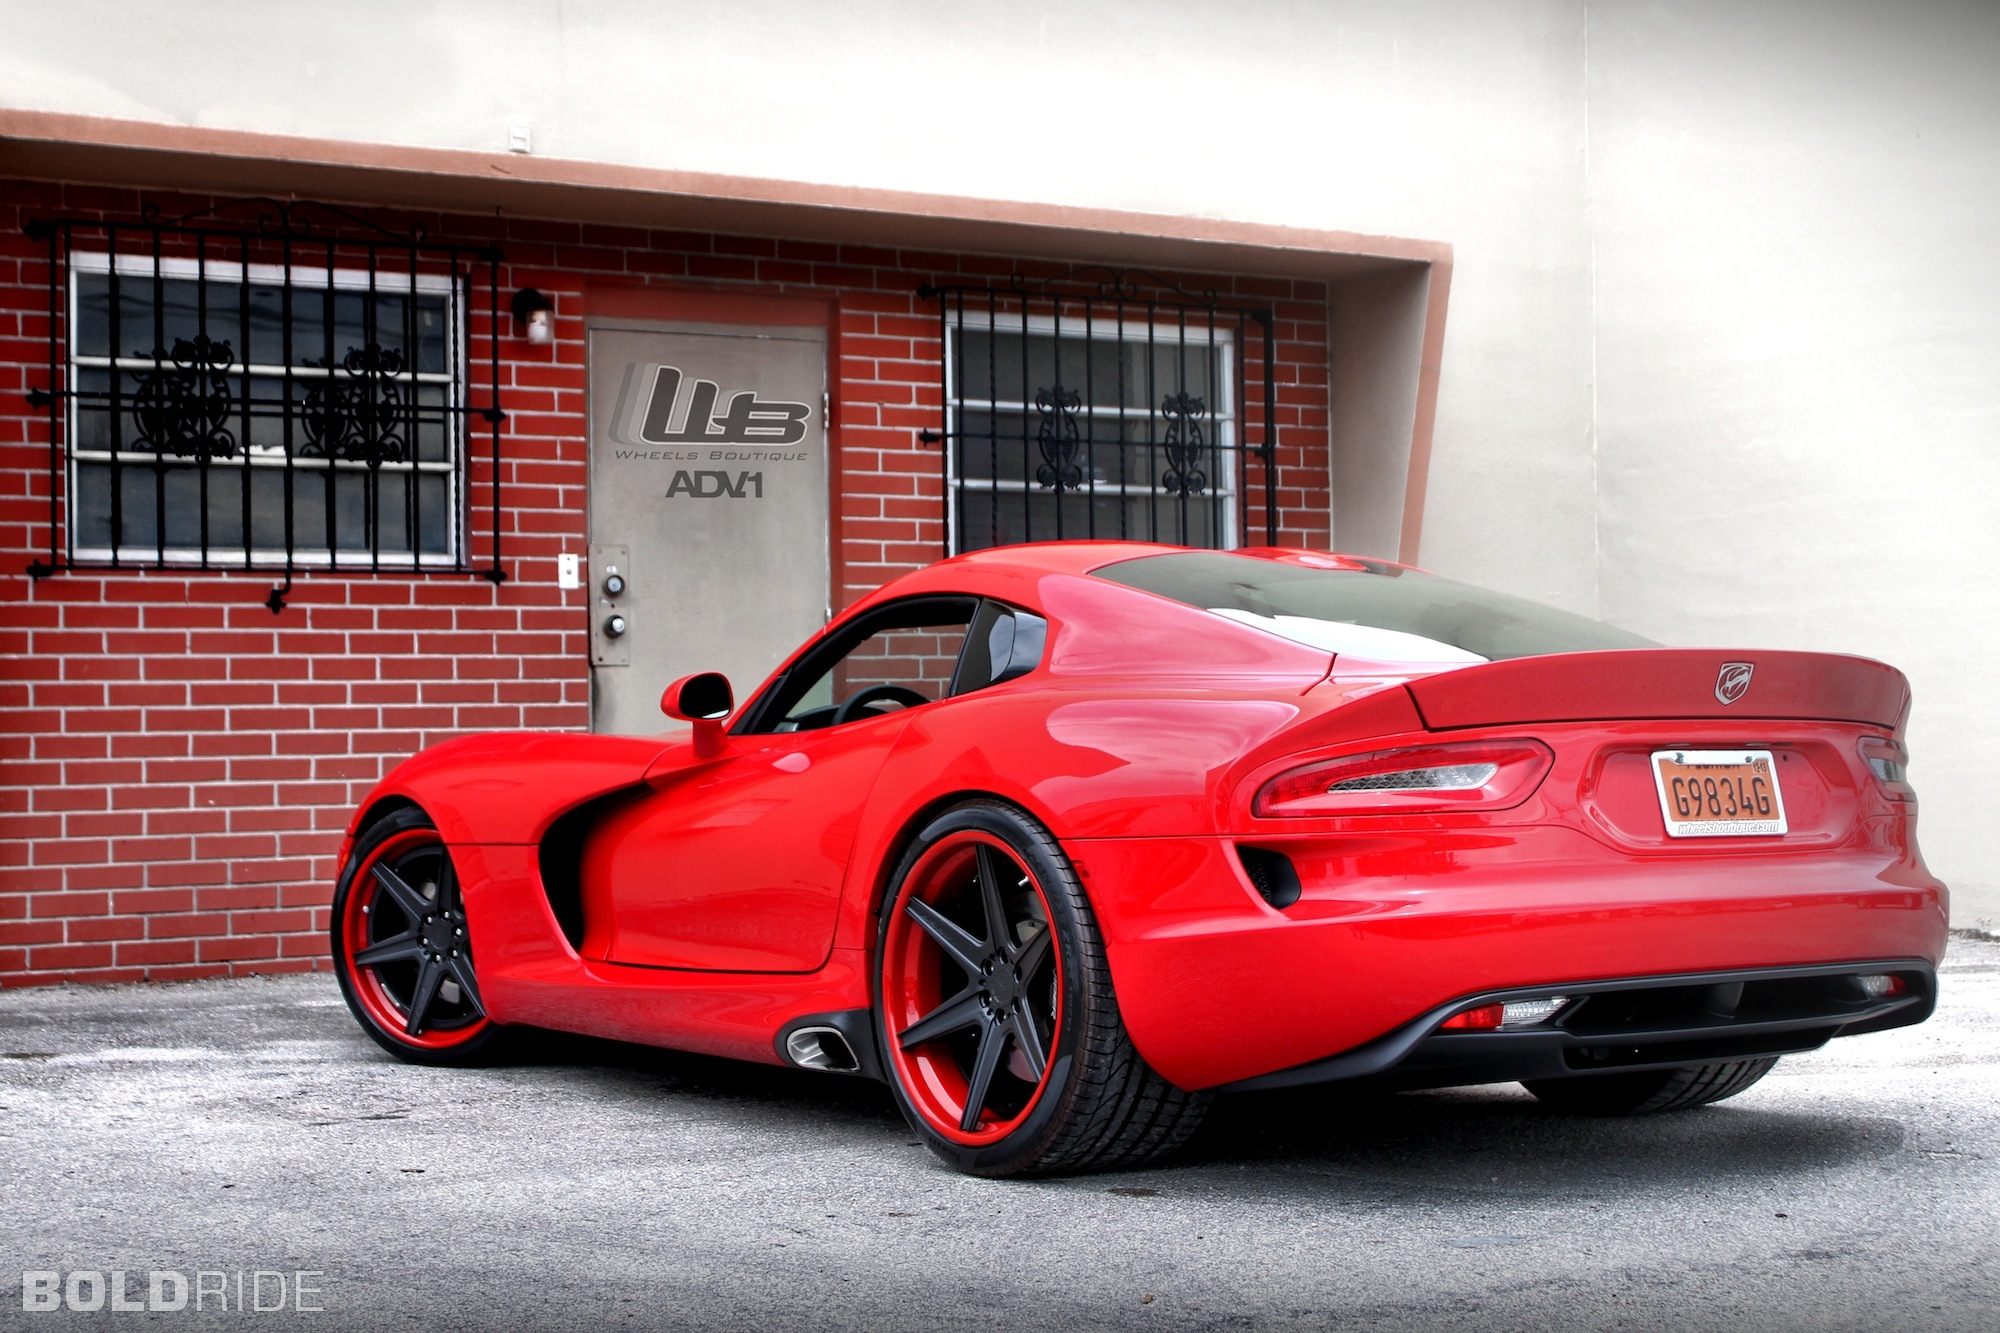 2013 Wheels Boutique SRT Viper 1024 x 770